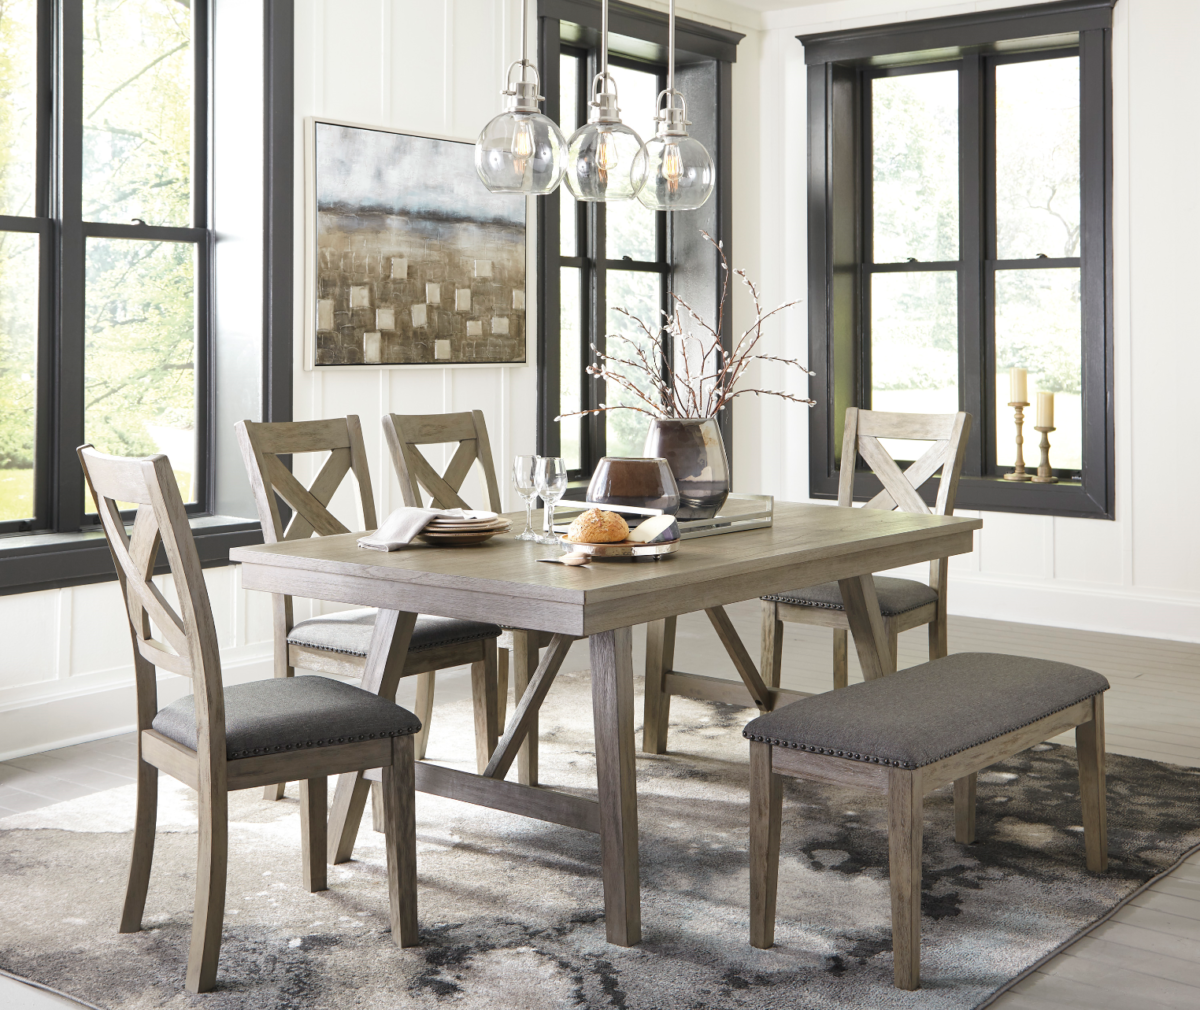 Dining Table 6 pc. D617-45 New